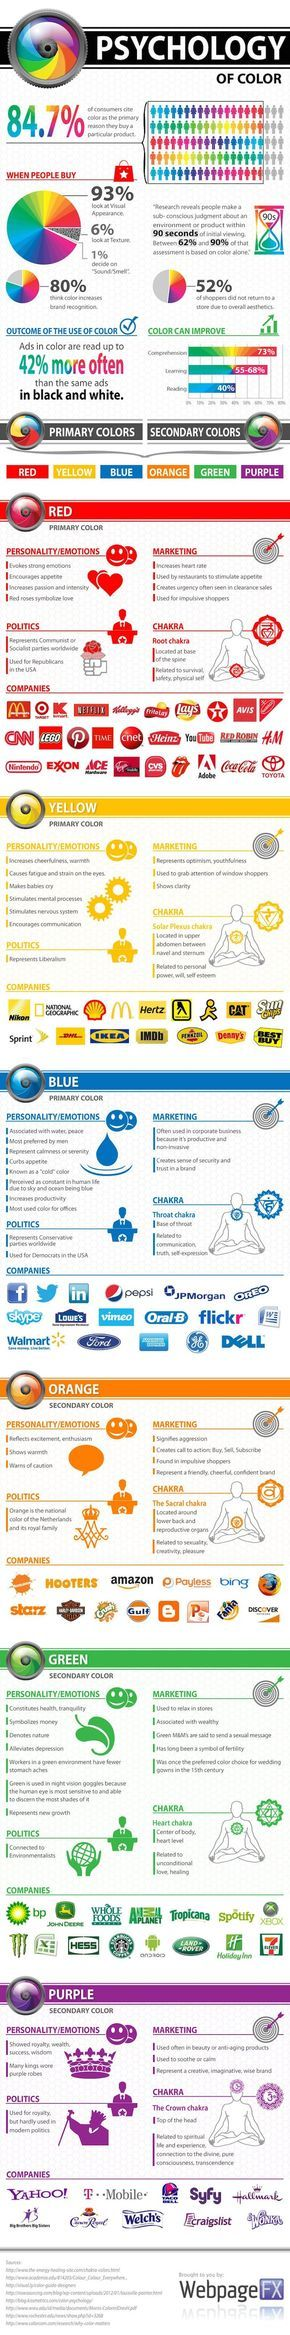 Interesting take on the psychology of colour.   The Psychology of Color:  How it